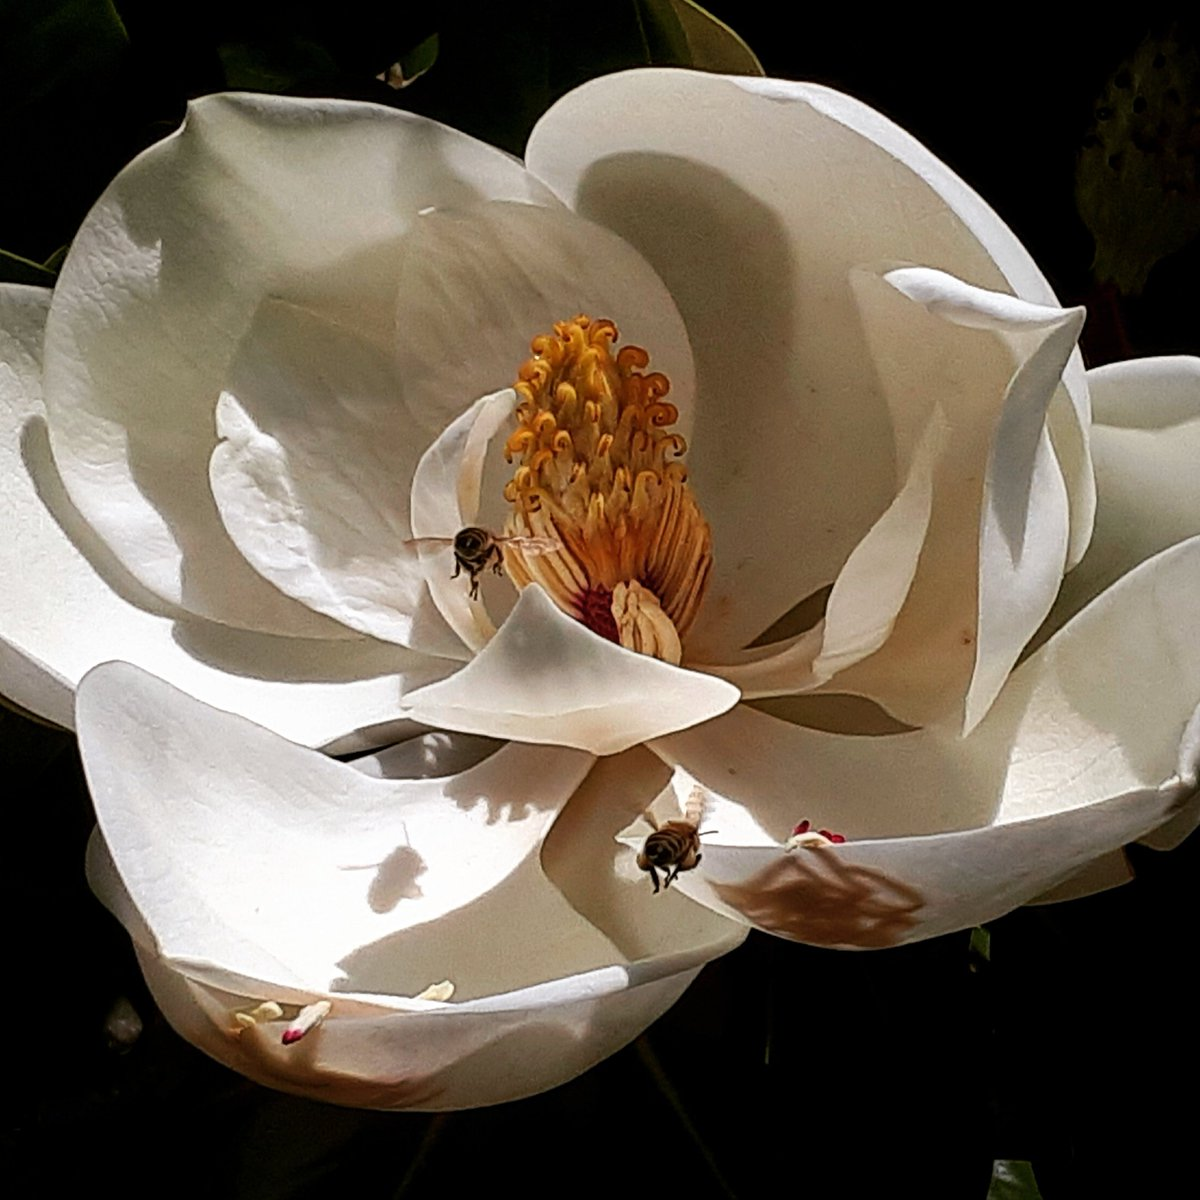 Bees flying over a lovely magnolia flower. I just had to take a pic! #Eugene #Oregon